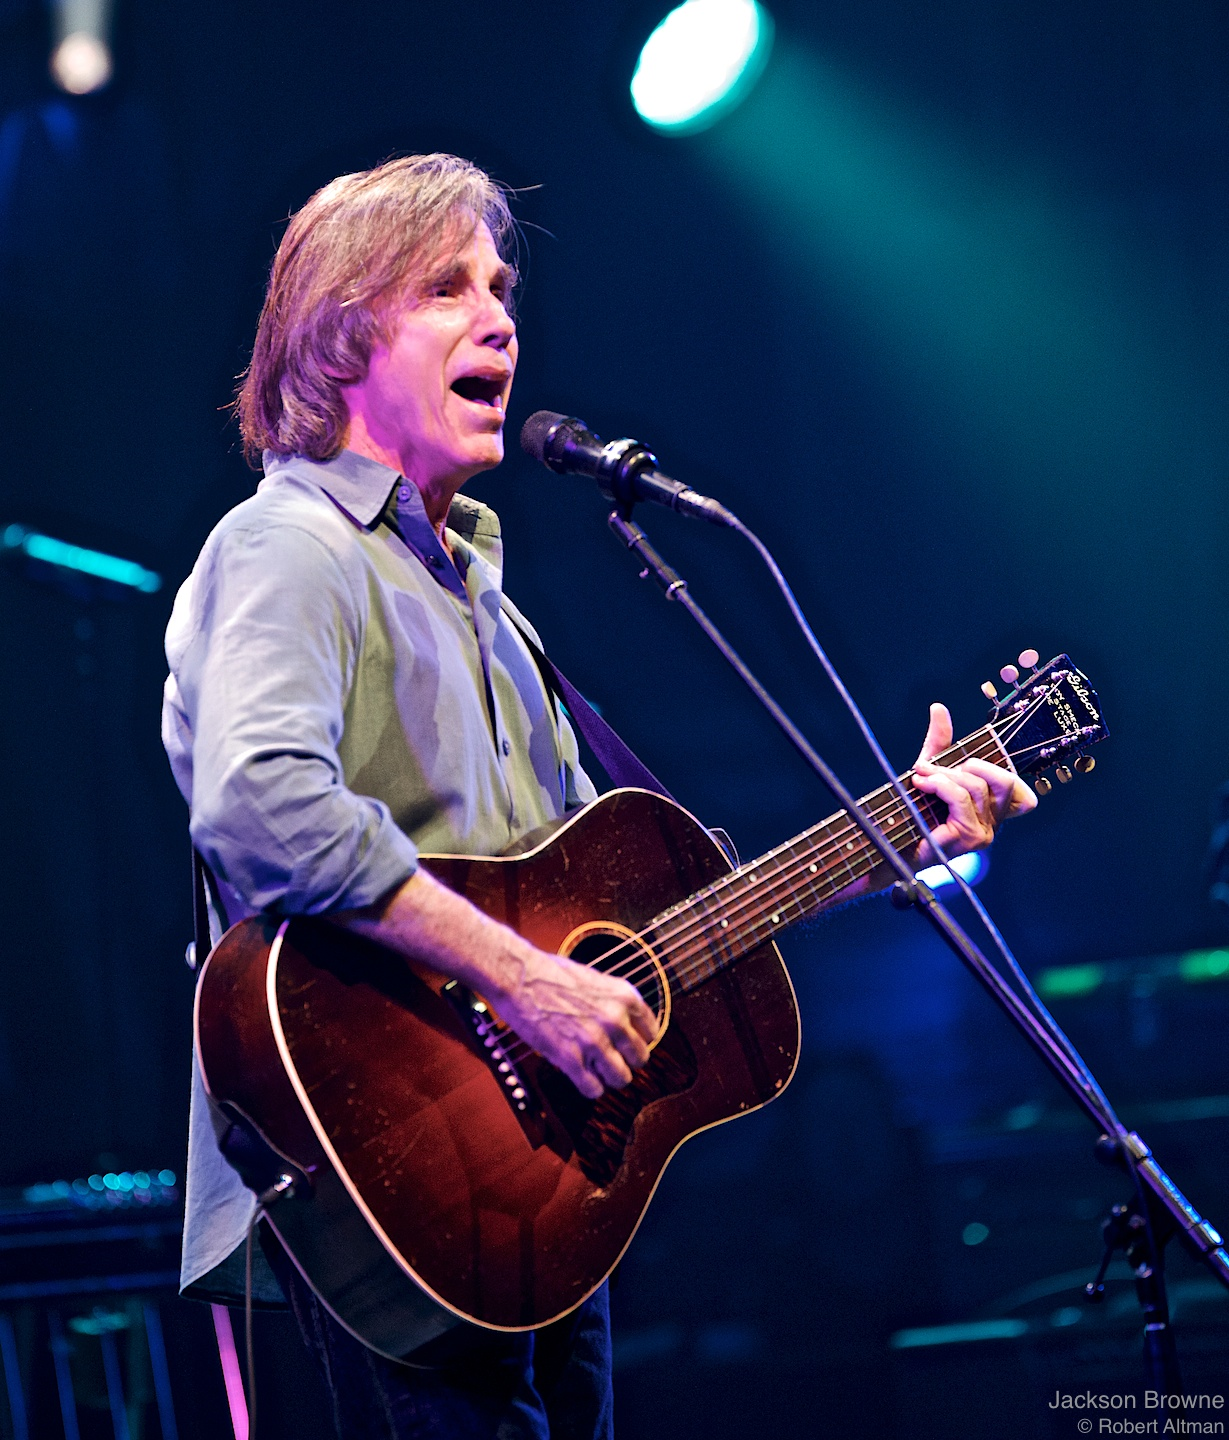 Check out Photos of Jackson Browne at Beacon Theater in ...